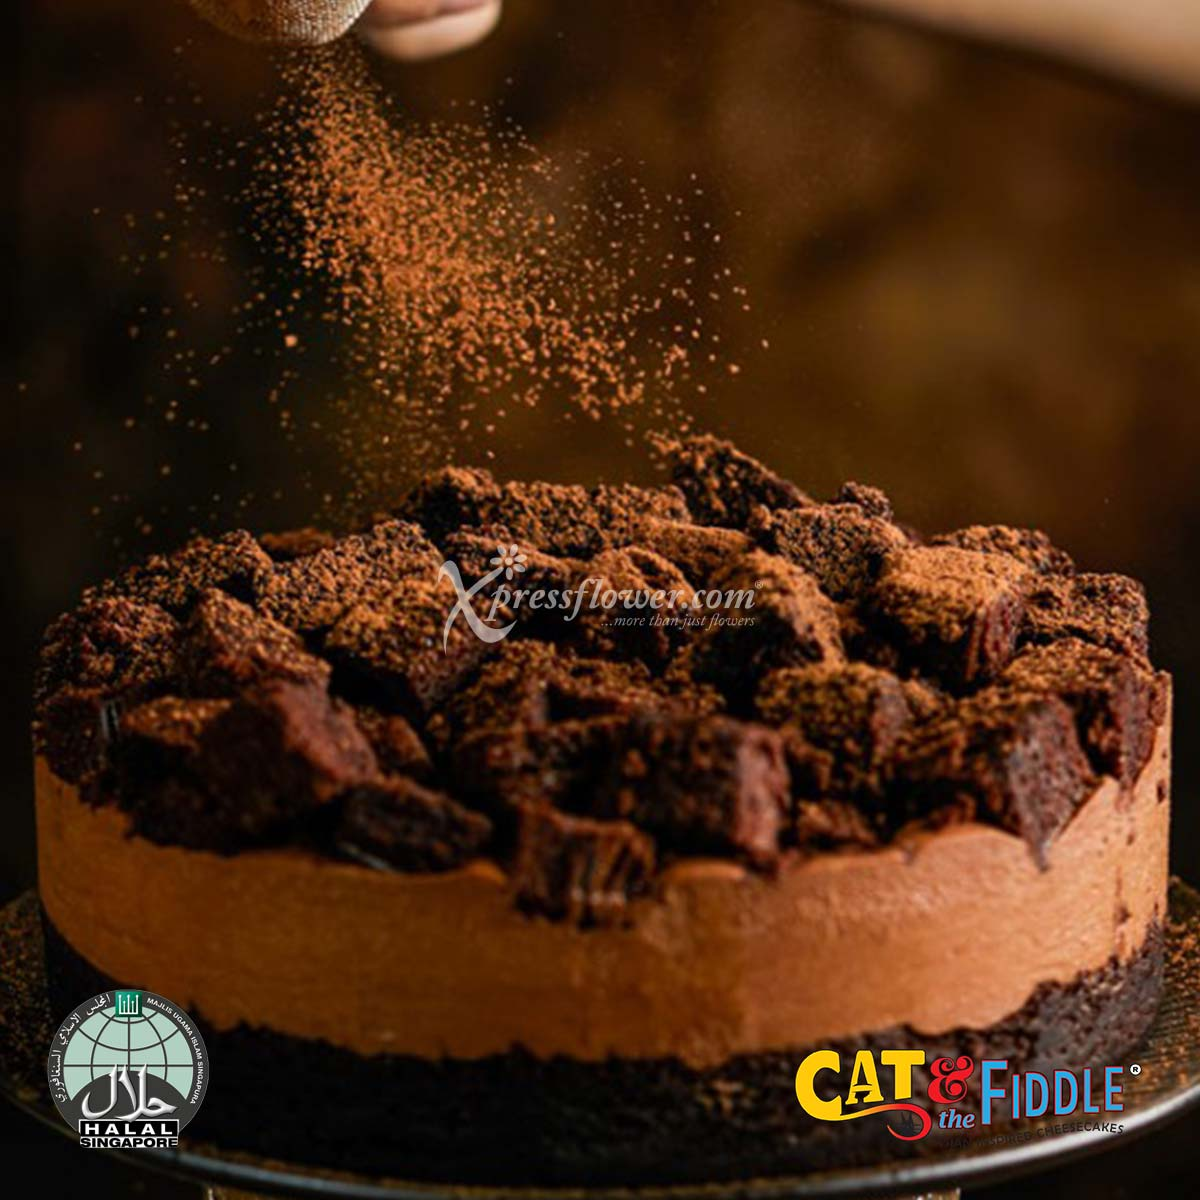 Naughty and Nice Devil's Chocolate Cheesecake (Cat & The Fiddle)